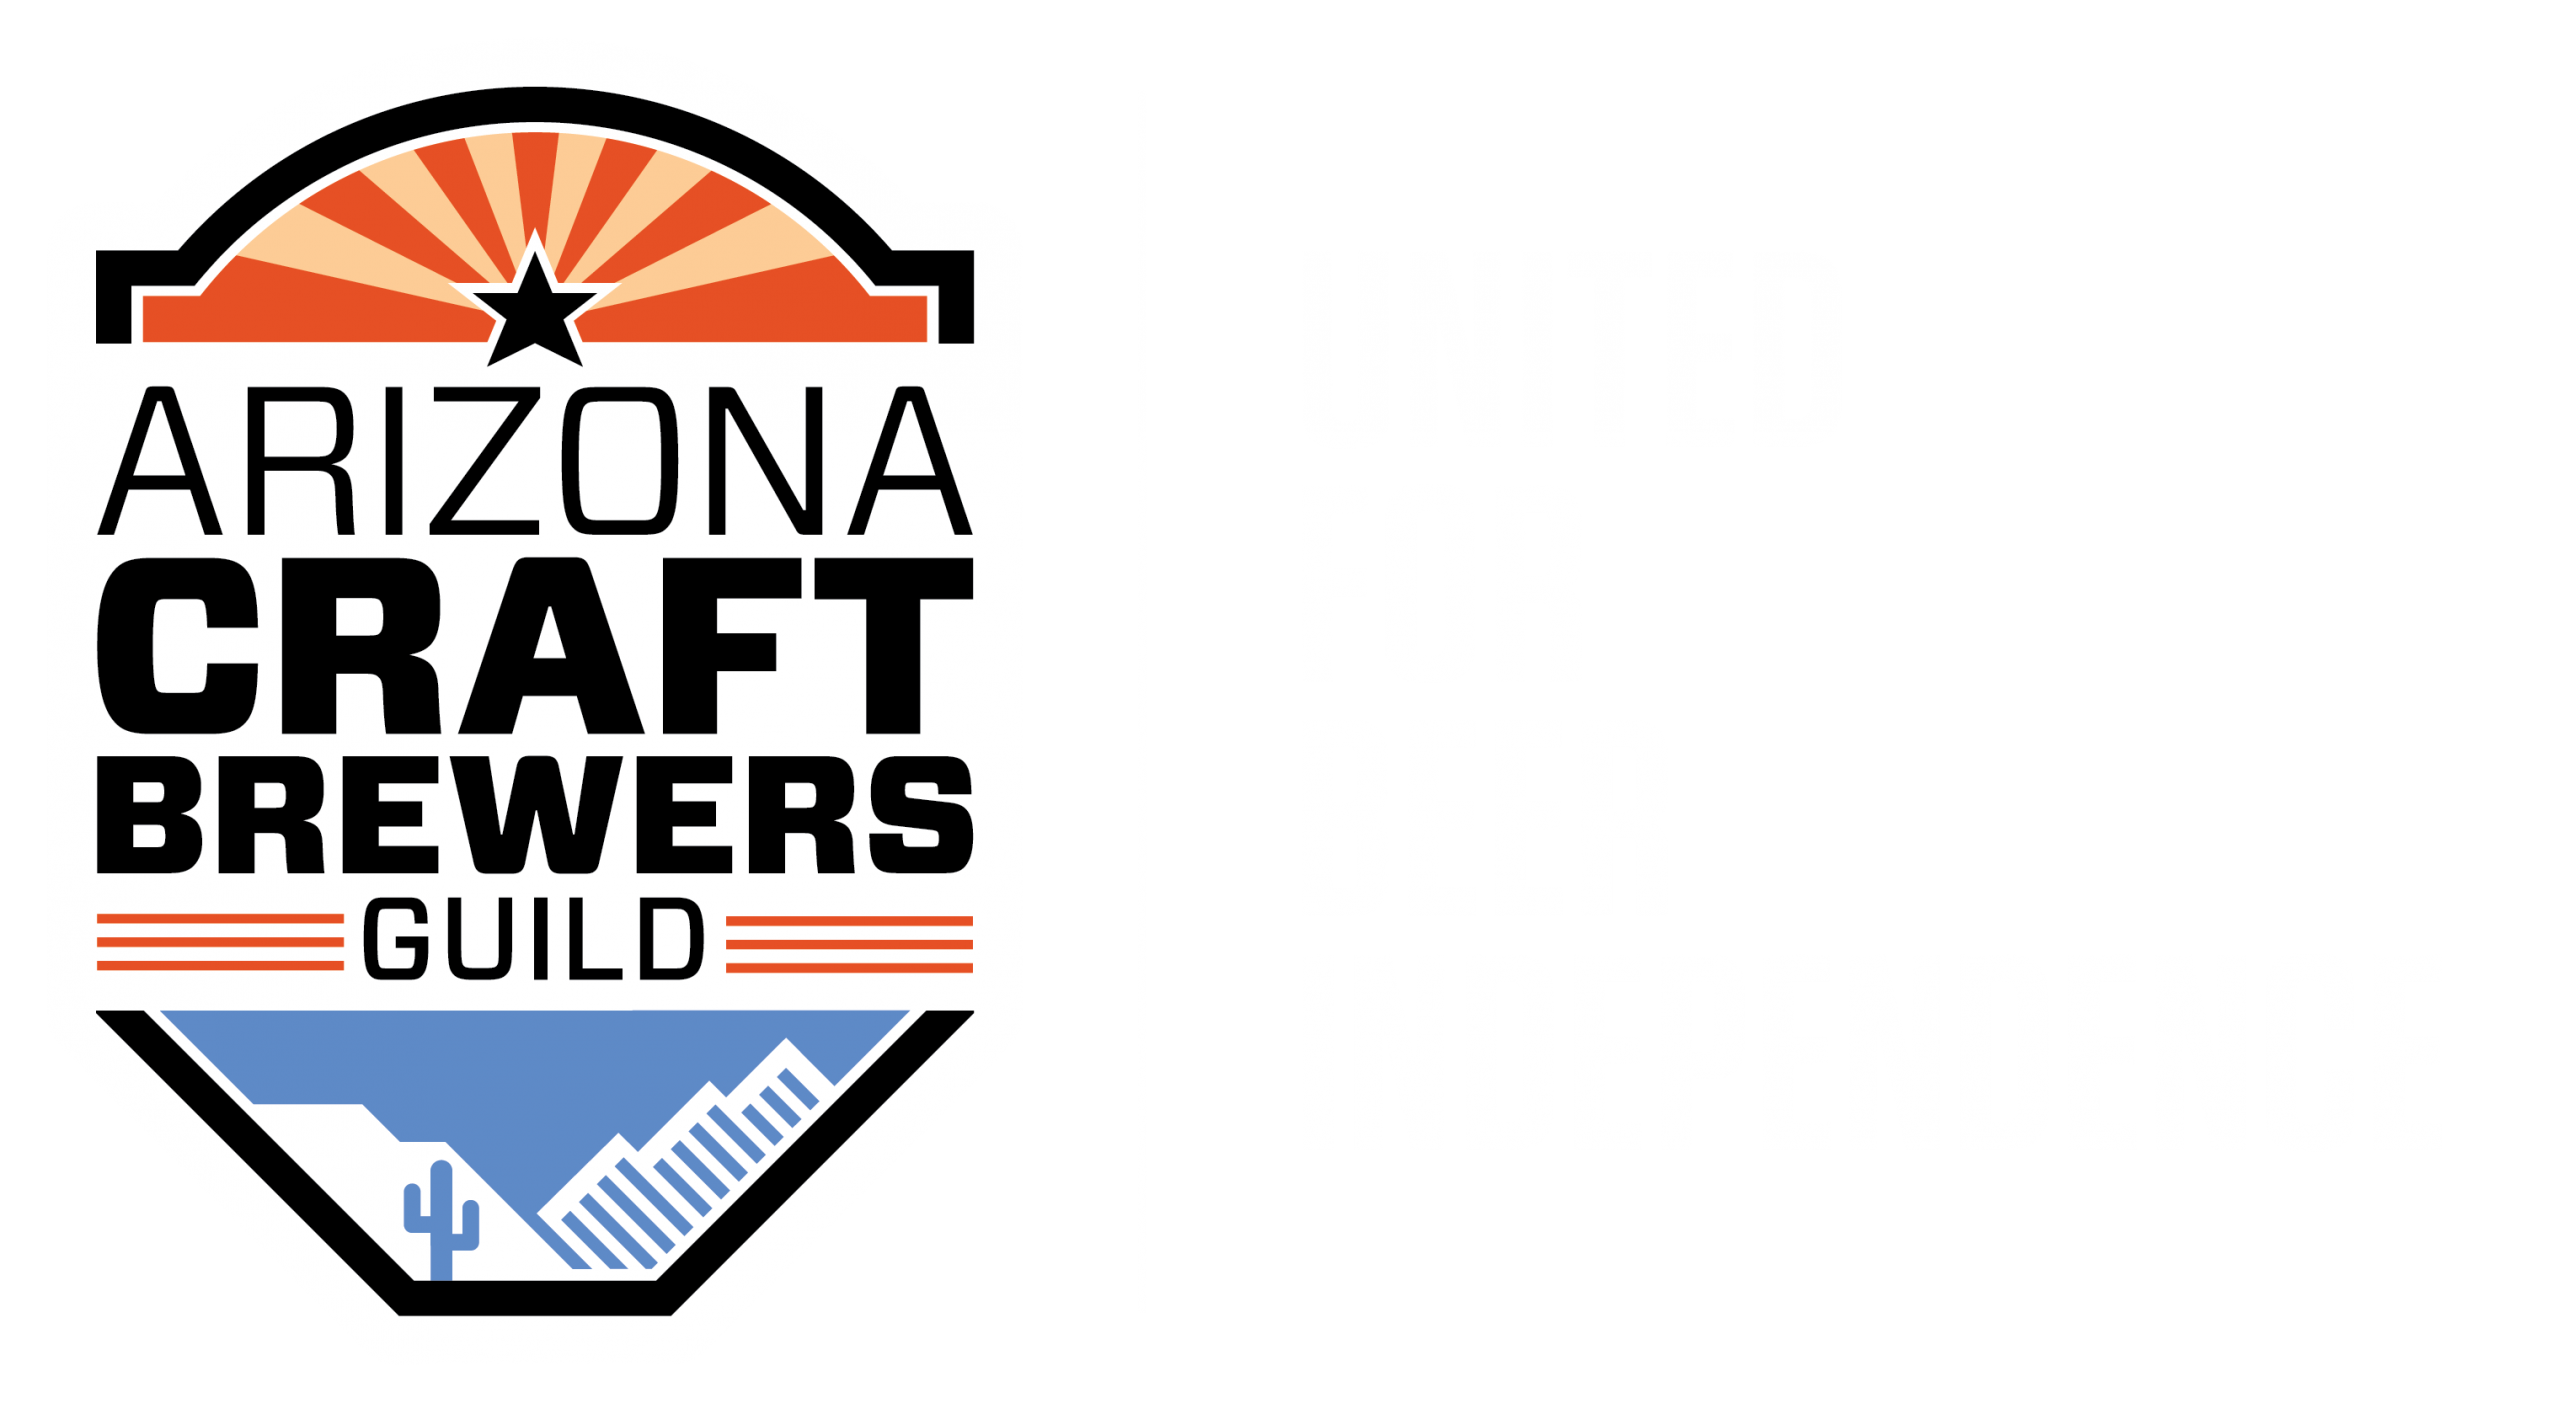 Pints Beverage Consulting LLC | Arizona Craft Brewers Guild